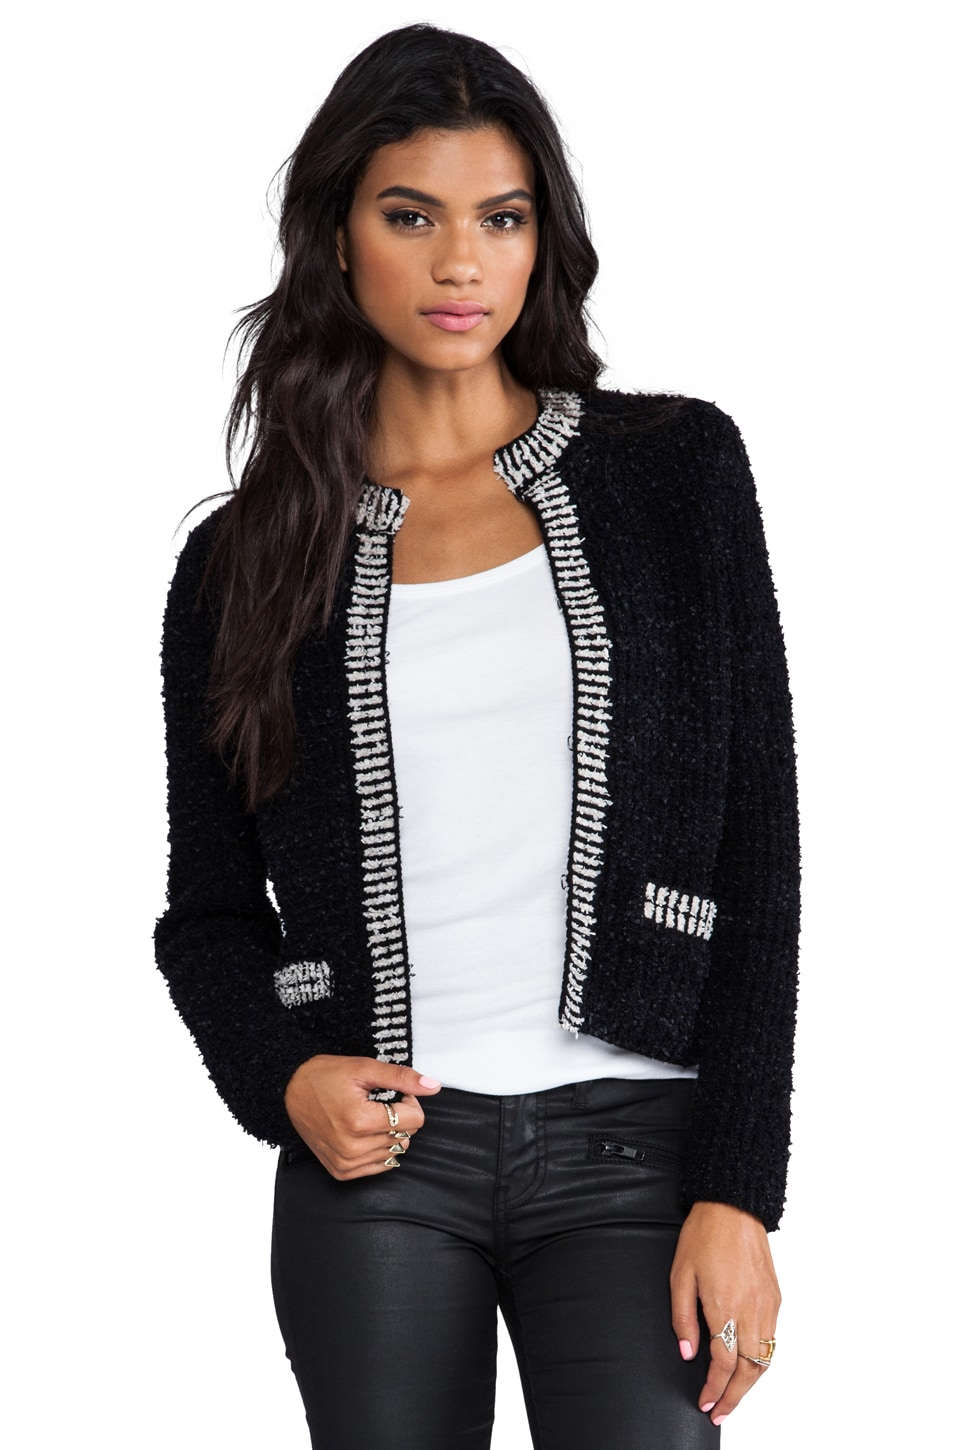 360 Sweater Rae Eyelash Yarn Cardigan in White/Black